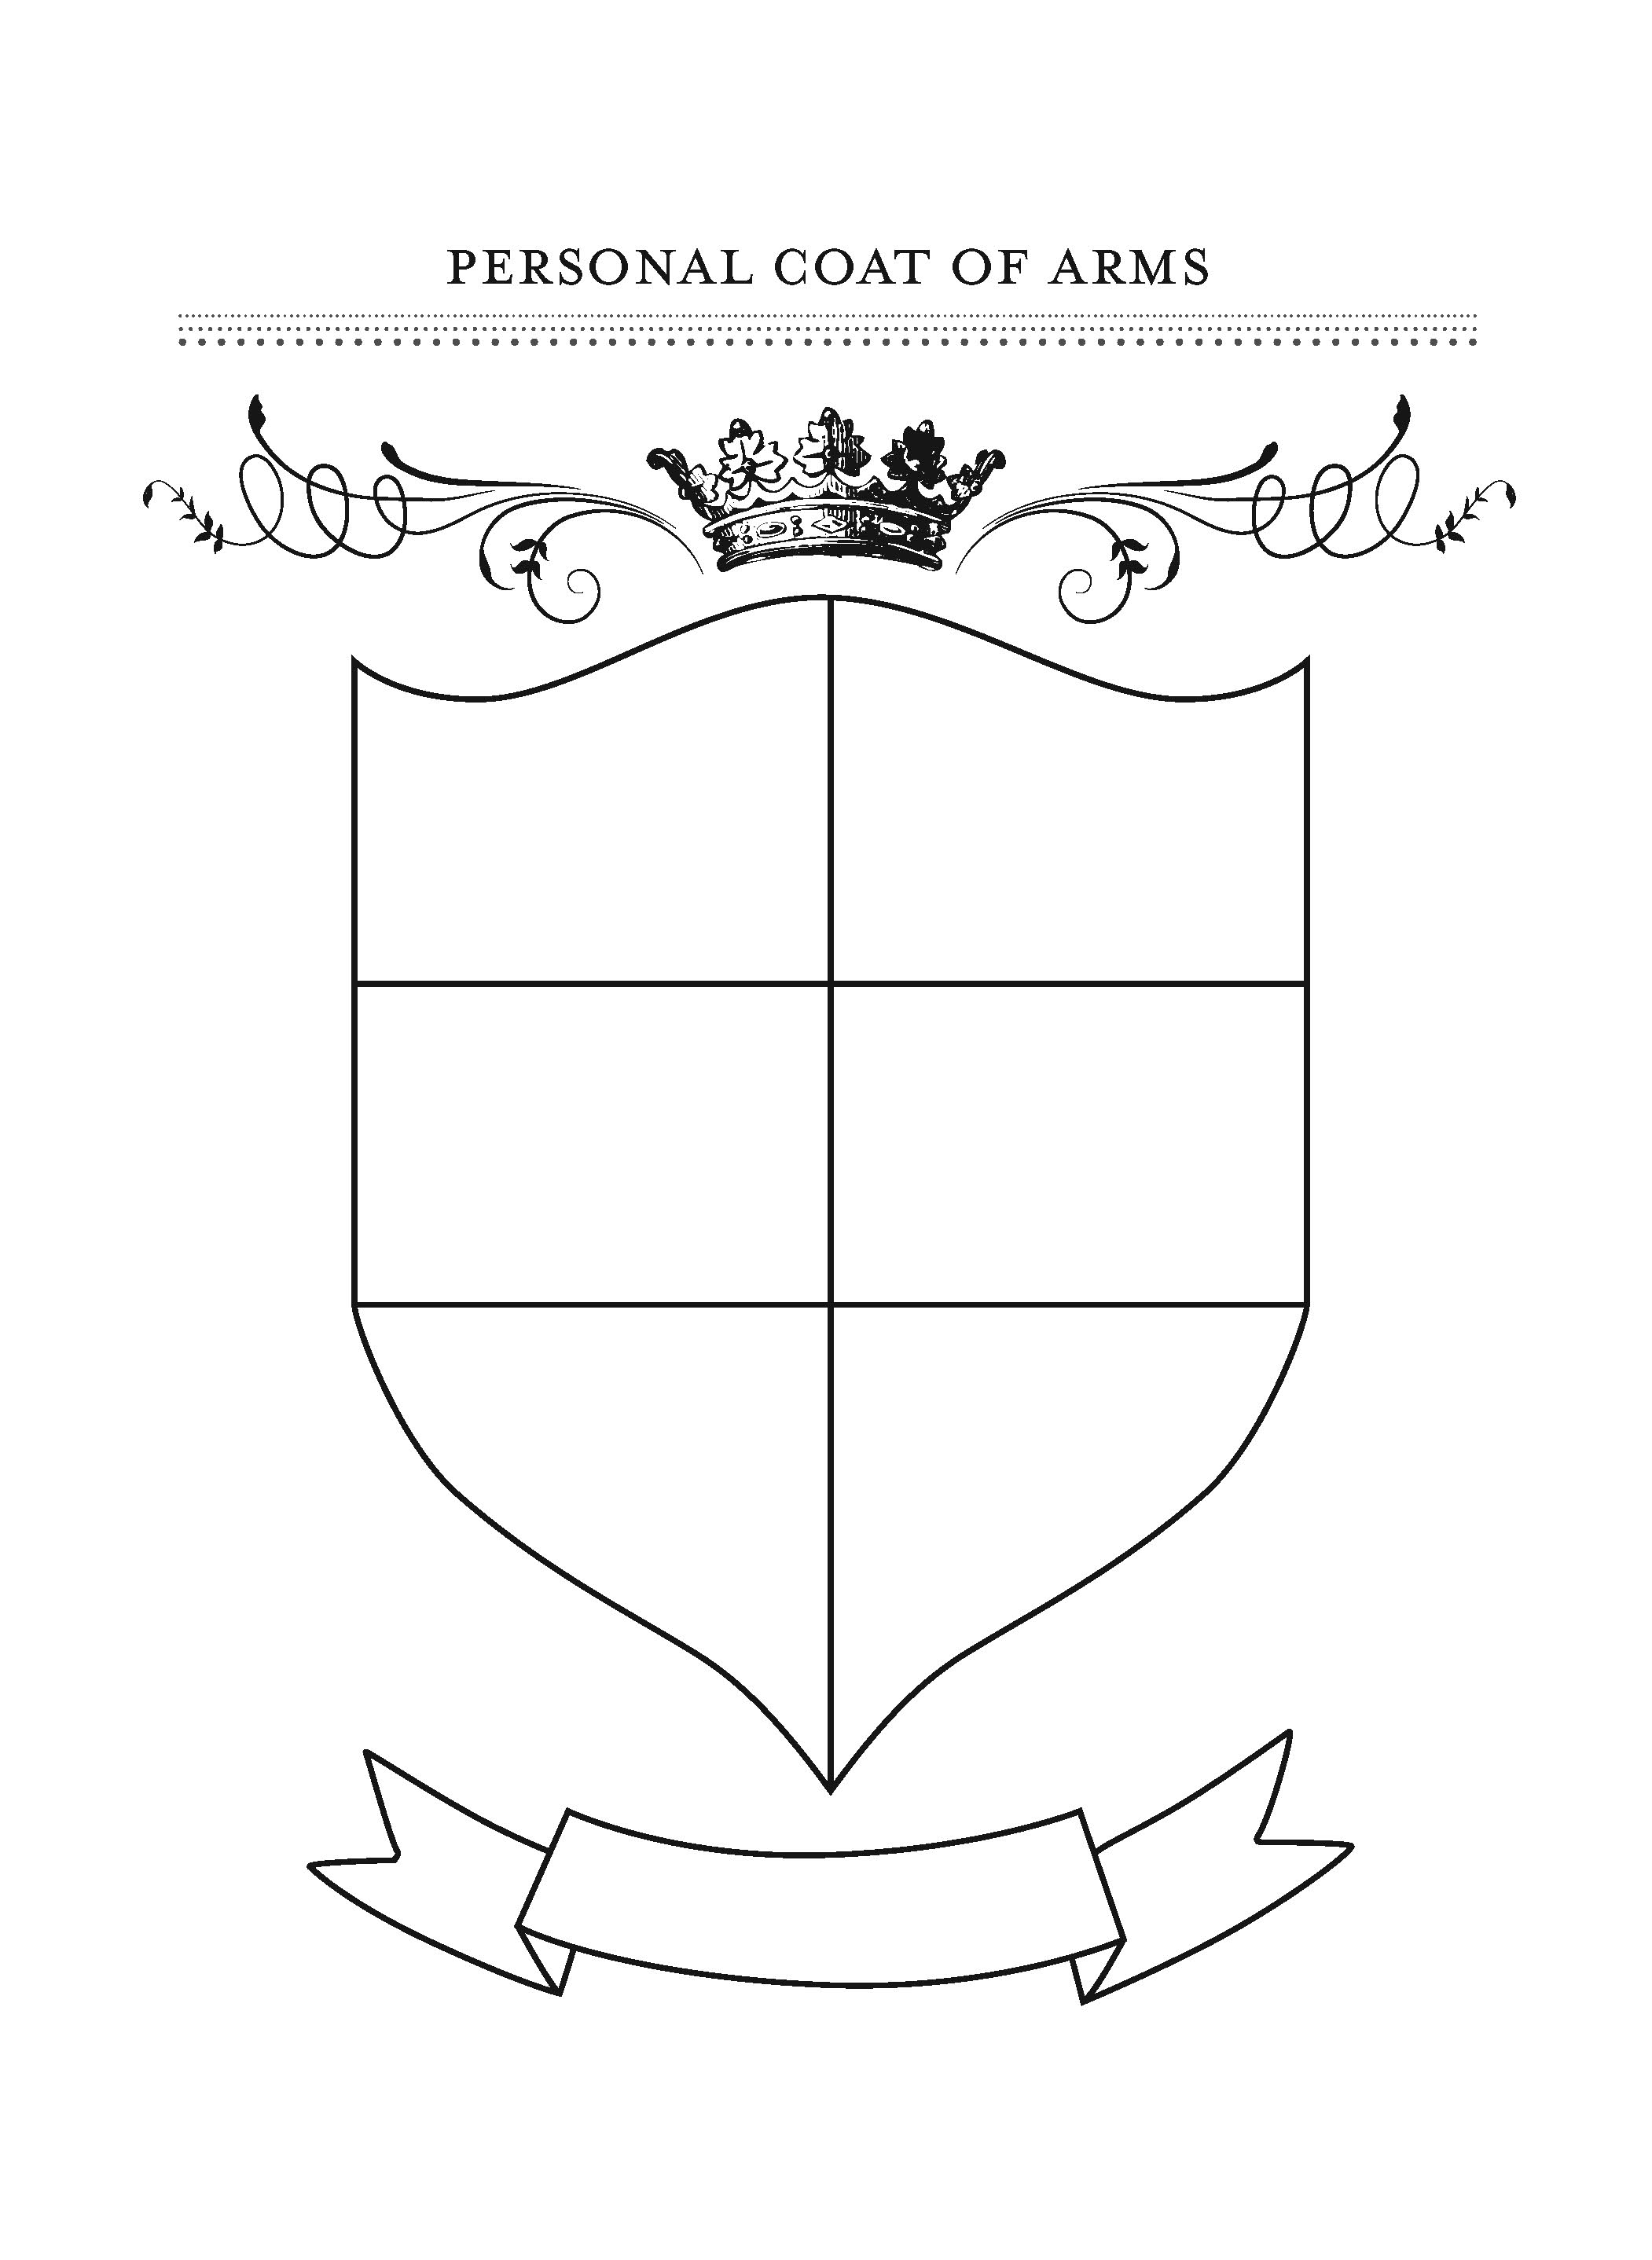 Recreation Therapy Ideas Personal Coat Of Arms